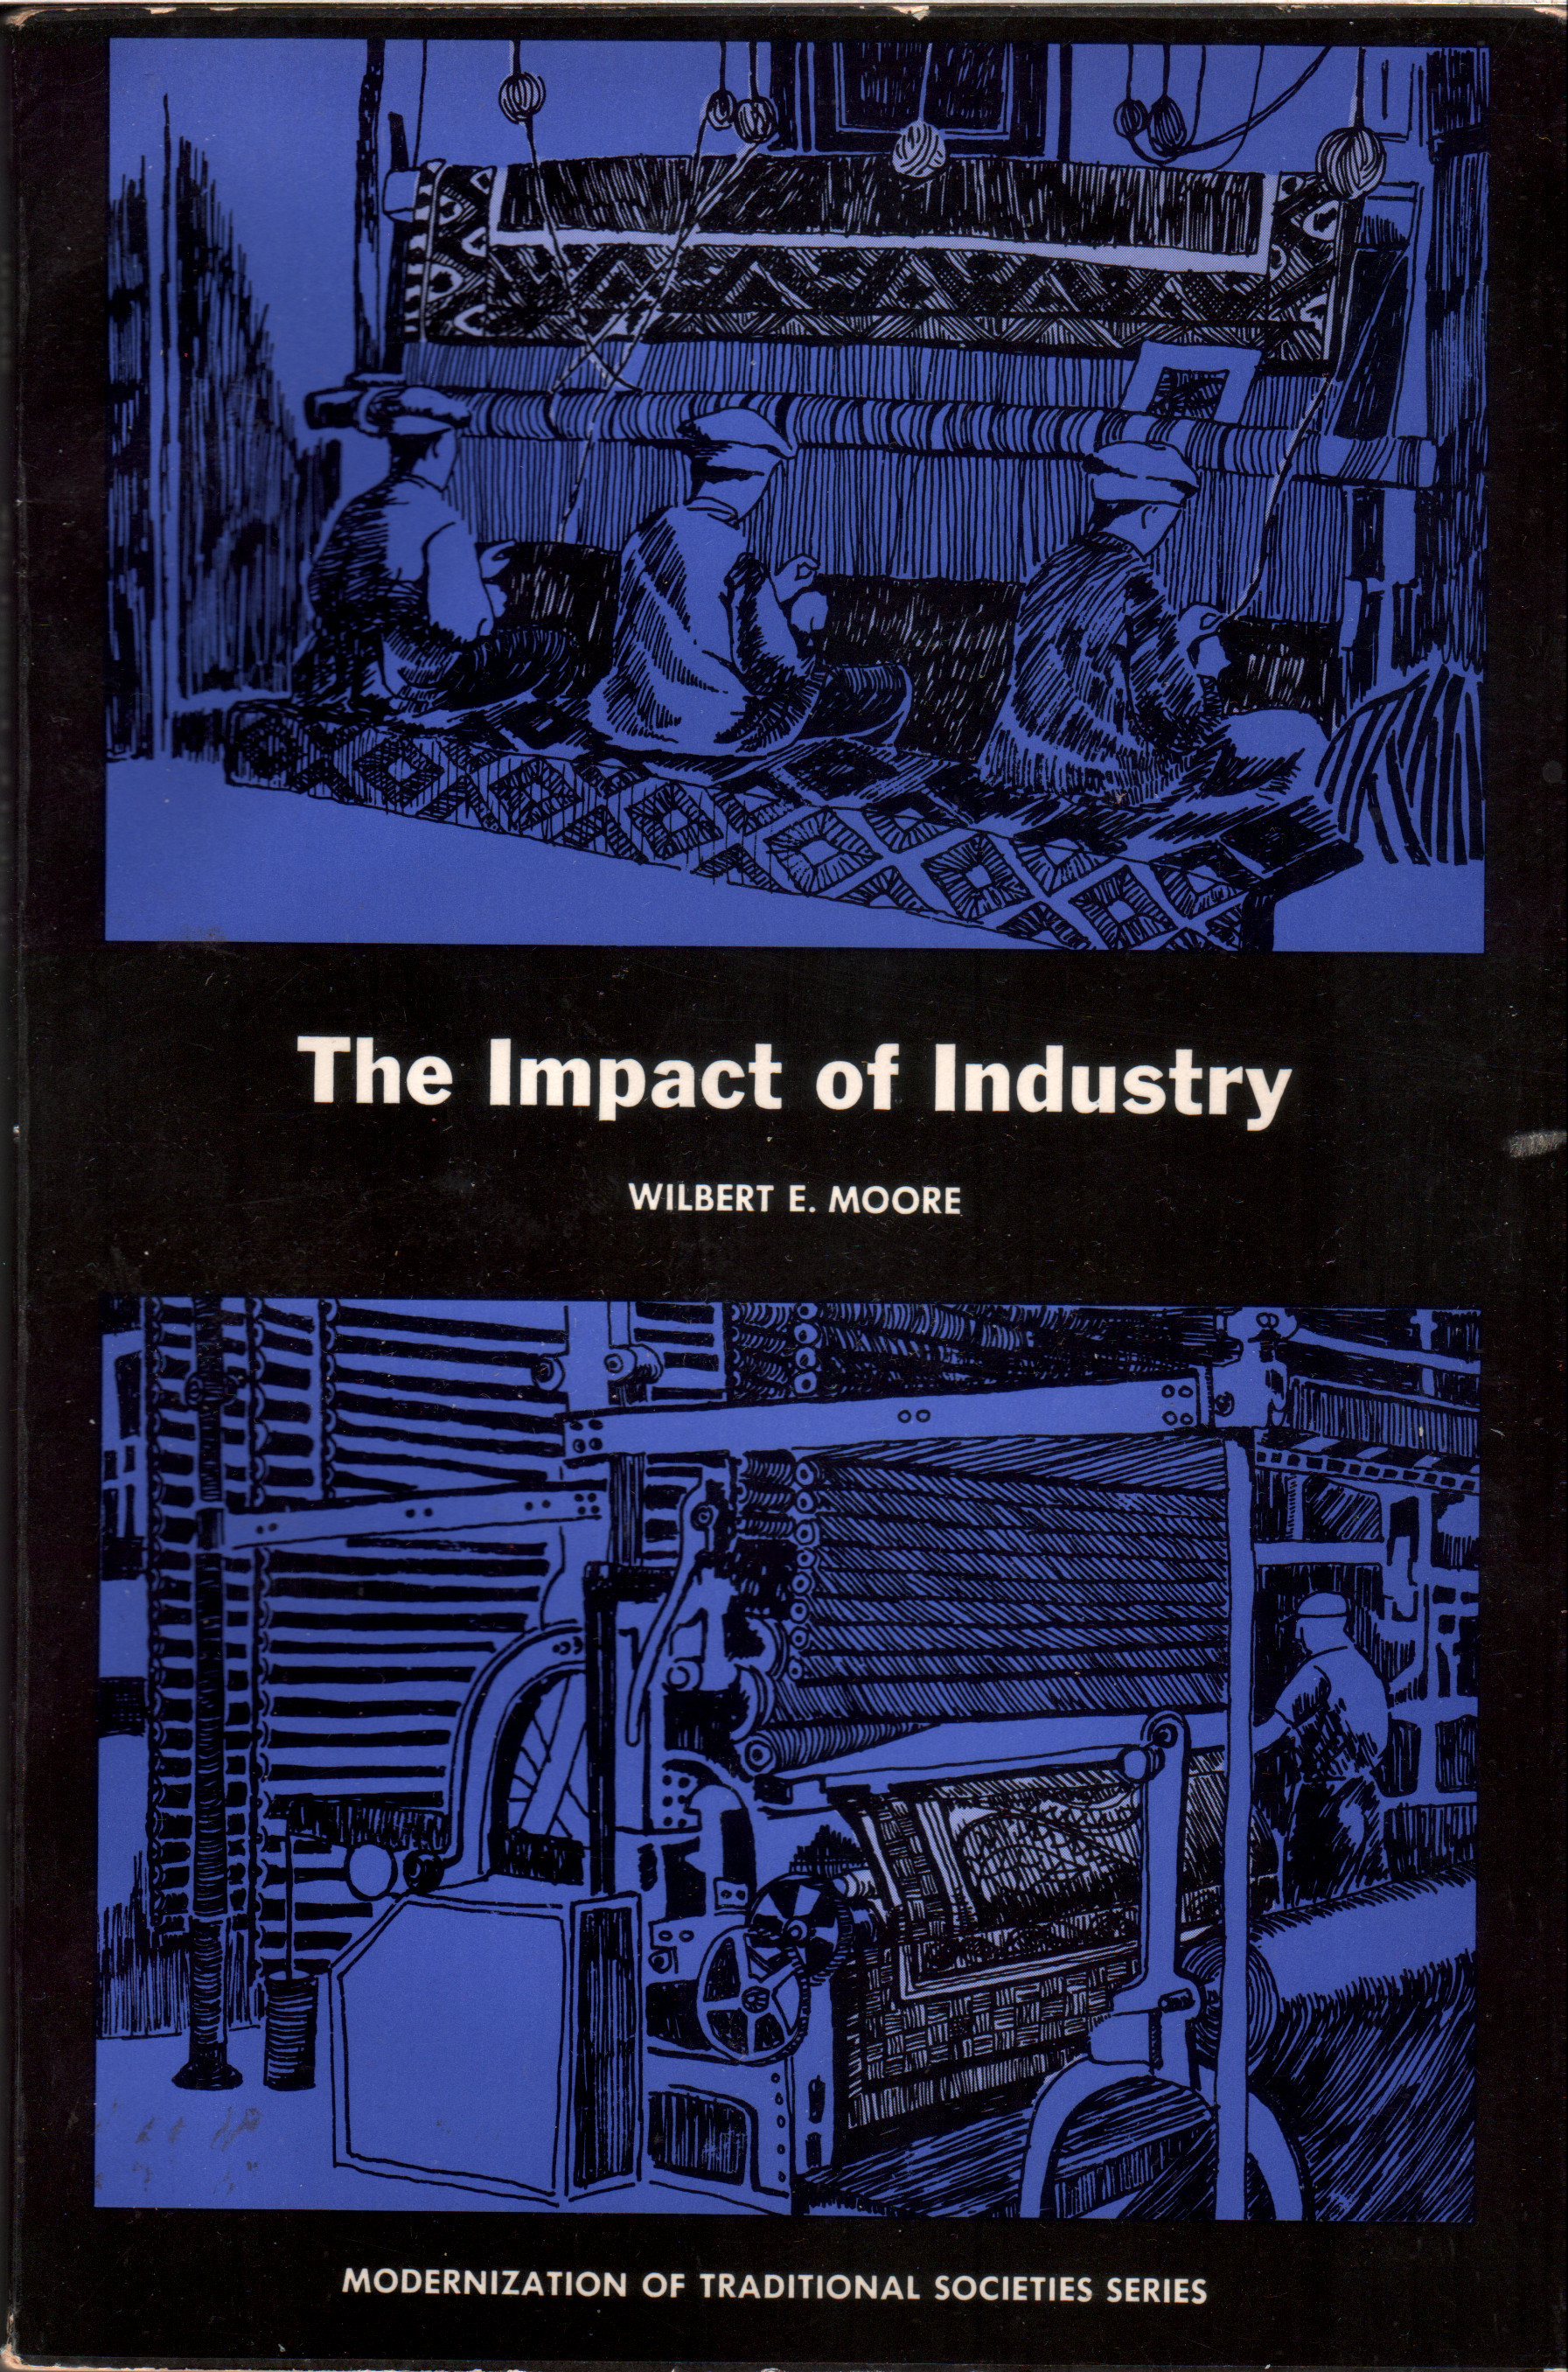 The Impact of Industry (Modernization of Traditional Societies Series) Wilbert E. Moore